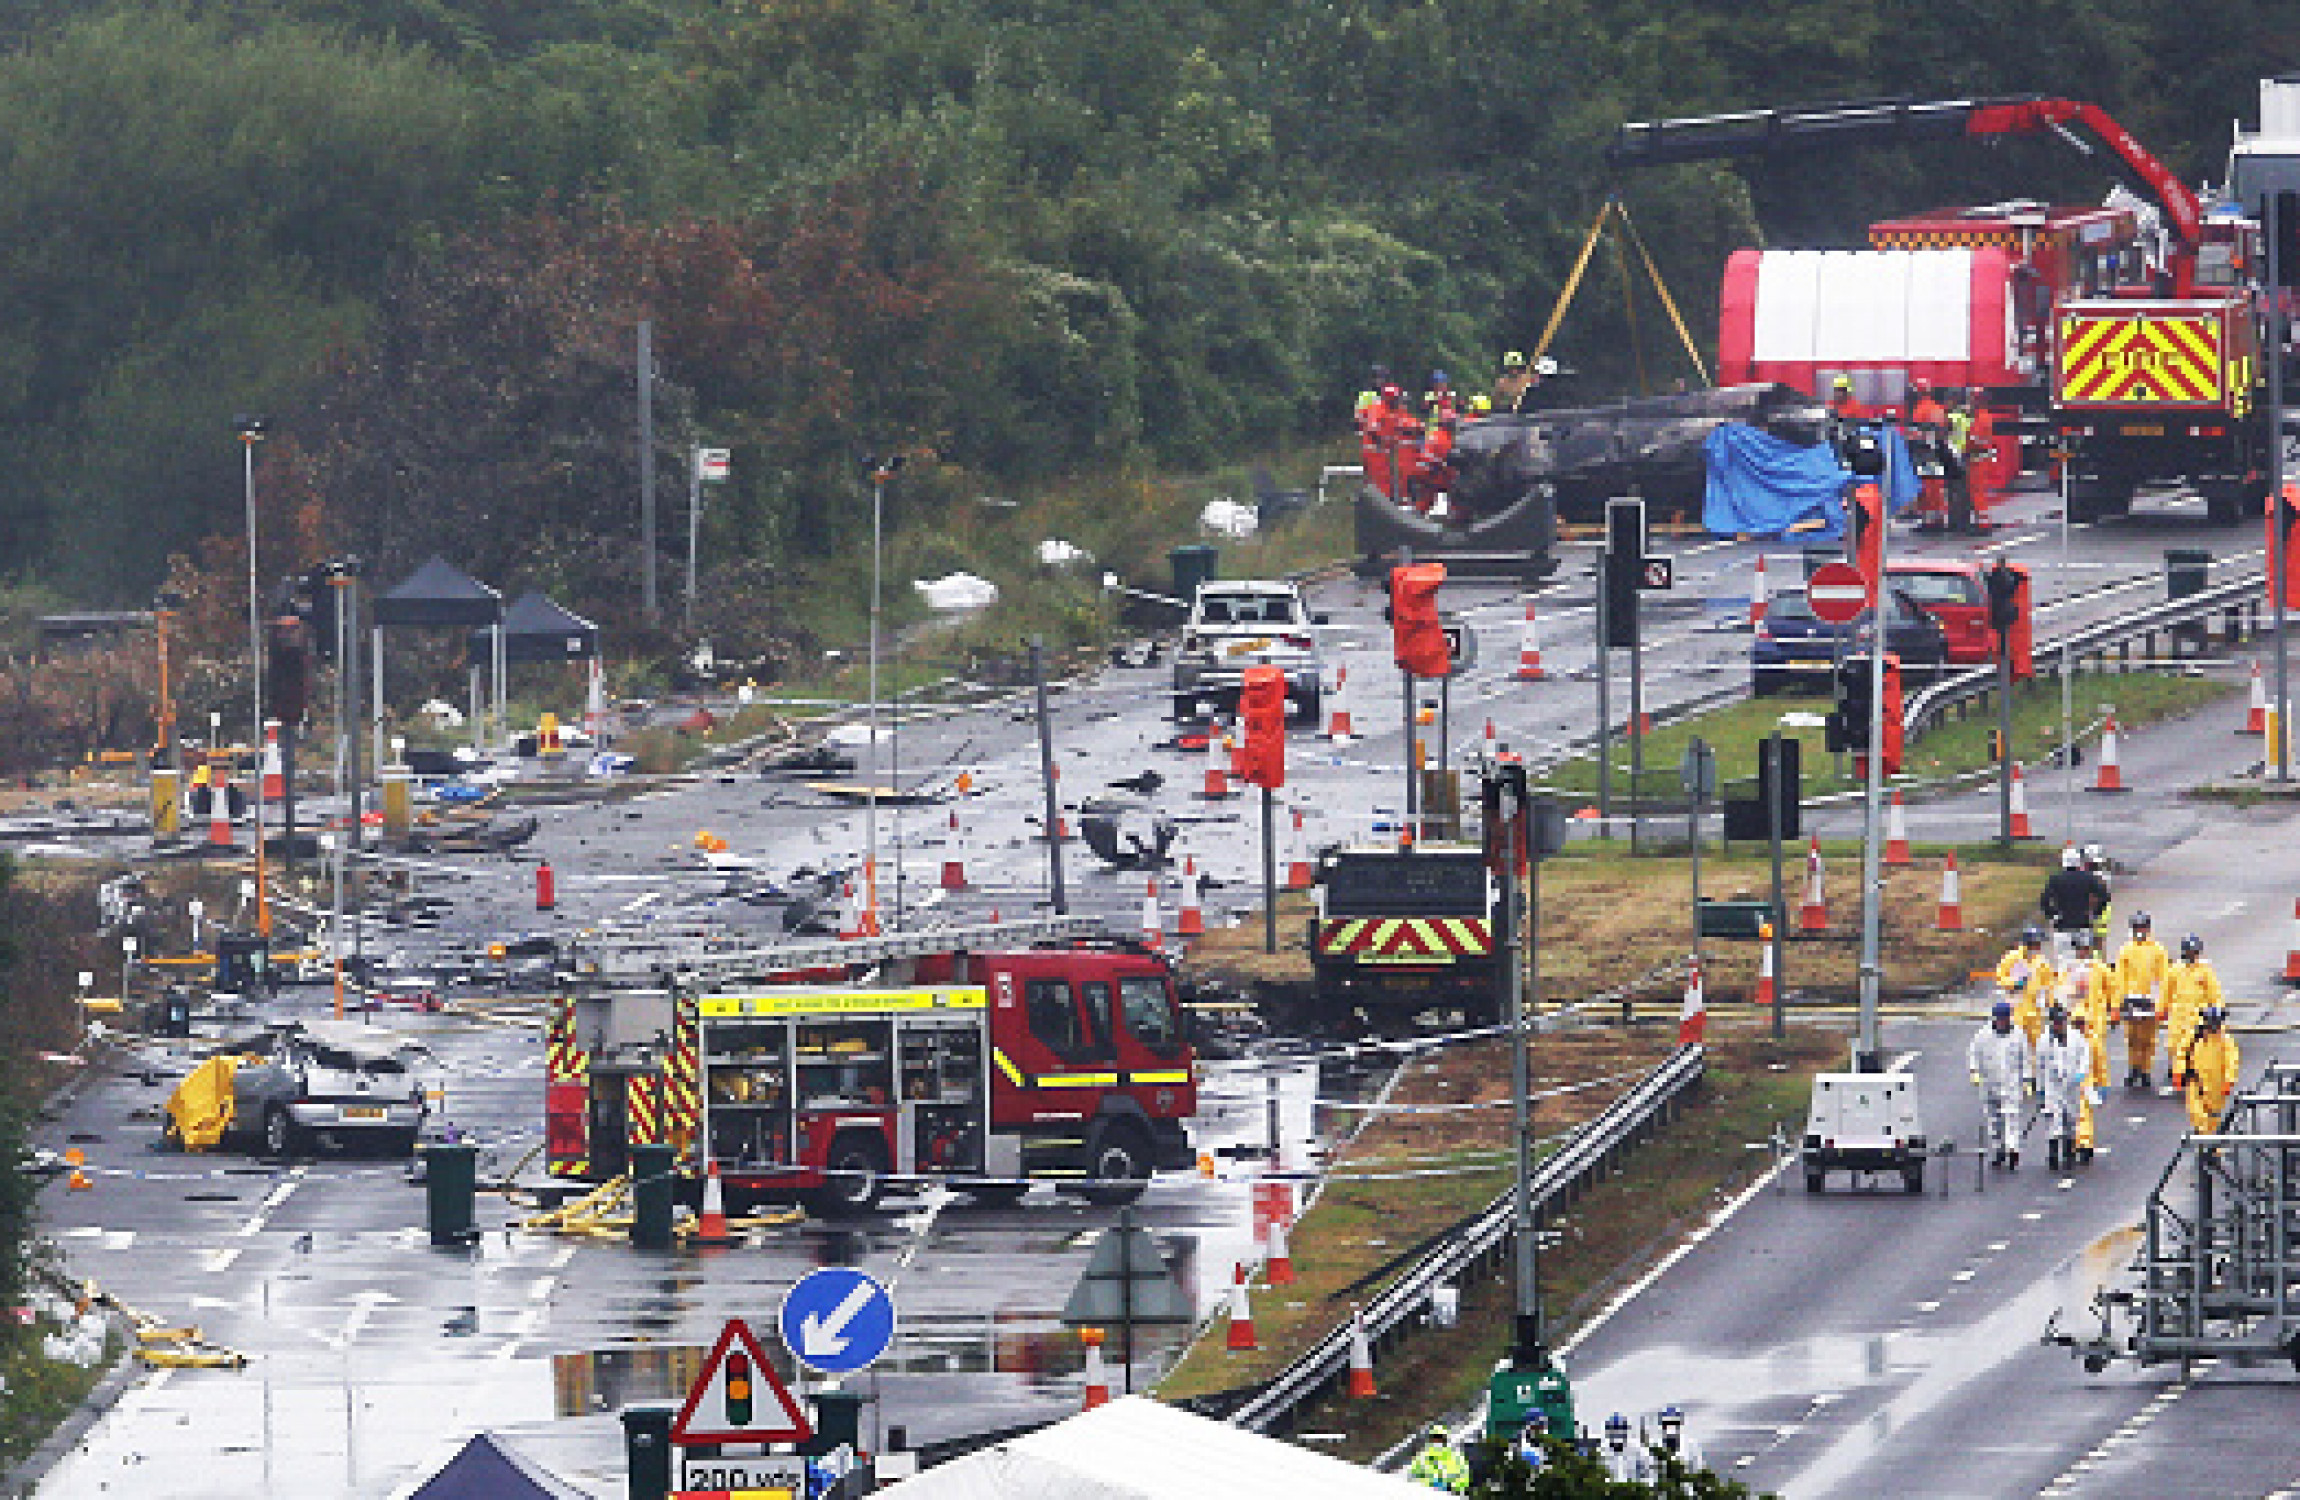 Shoreham Air show disaster pilot to be charged with manslaughter